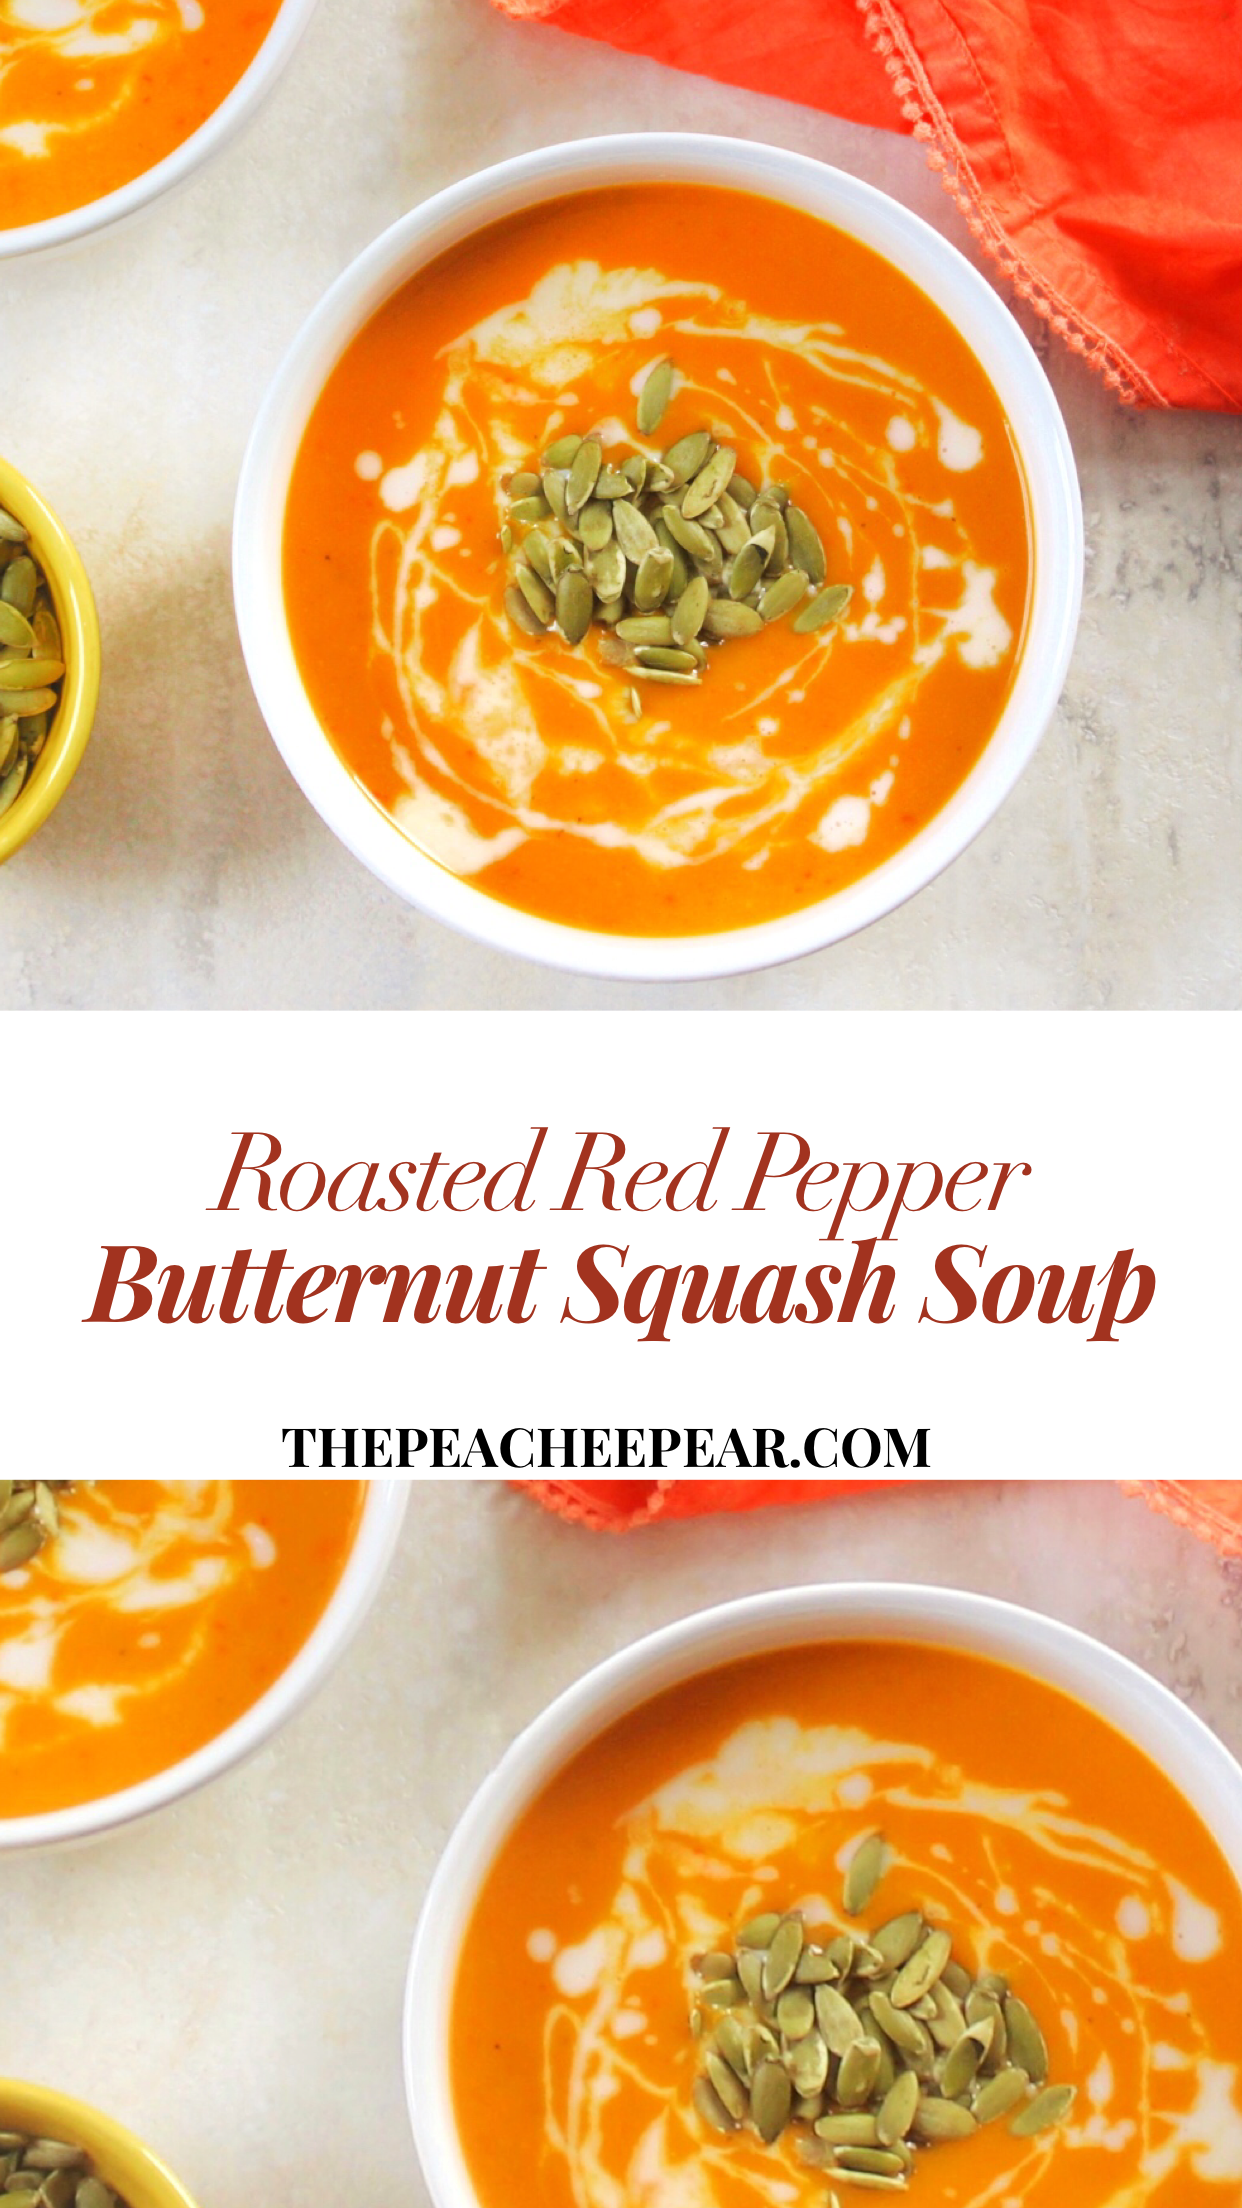 Roasted Red Pepper Butternut Squash Soup